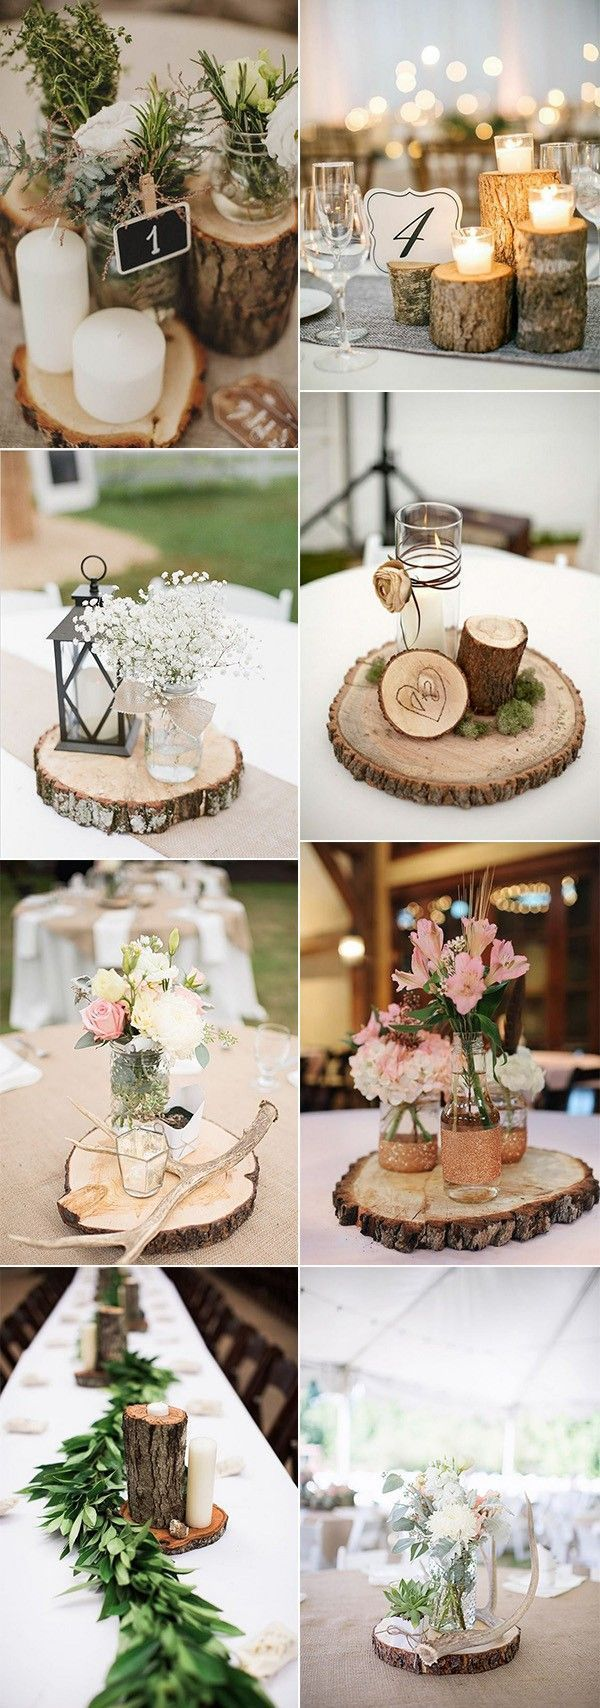 28 Country Rustic Wedding Decoration Ideas with Tree Stumps is part of Rustic wedding centerpieces - Tree stump detailing can be included in your big day in a variety of surprising ways they can act as solid, natural bases for an